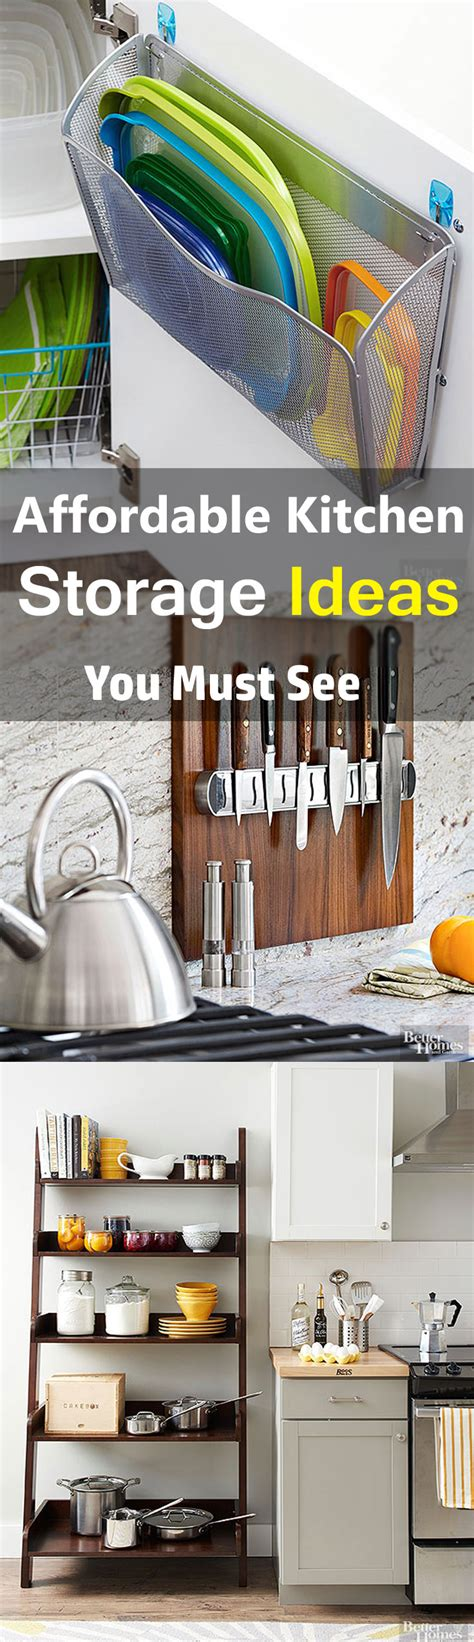 kitchen organize ideas affordable kitchen storage ideas to organize kitchen well